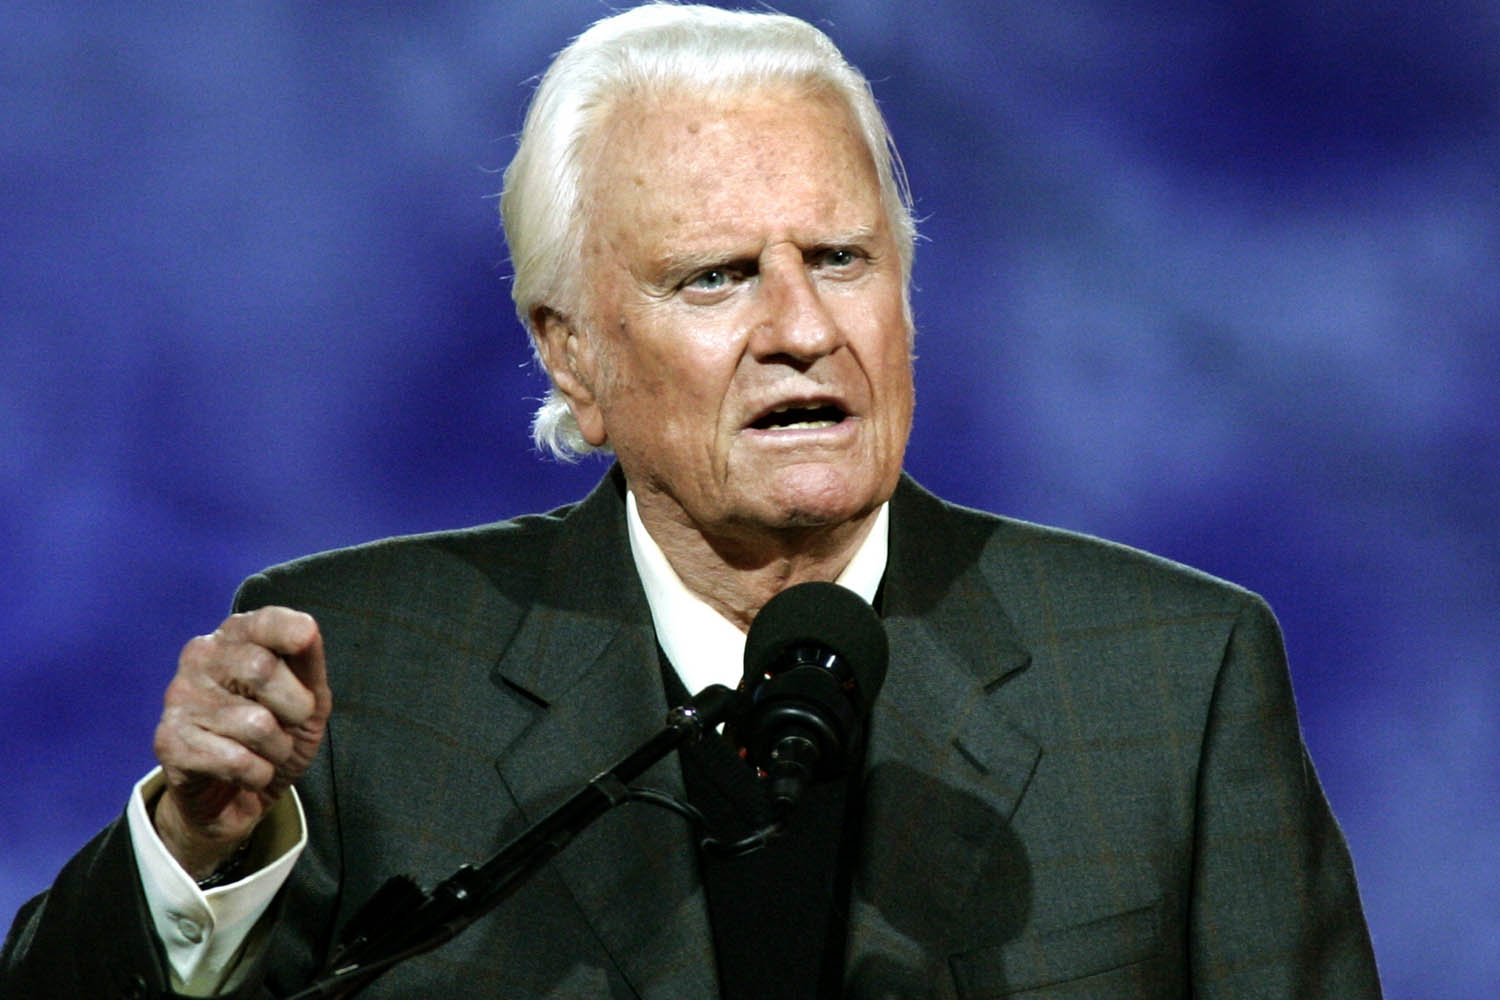 "(FILES)Evangelist Billy Graham delivers his message at the Billy Graham Crusade at Flushing Meadows Park in this June 24, 2005 file photo in Flushing Meadows, New York. US Reverend Billy Graham was hospitalized November 30, 2011 for possible pneumonia, the facility treating the 93-year-old internationally renowned evangelist said. ""He was admitted this afternoon,"" a spokeswoman for Mission Hospital in Asheville, North Carolina told AFP. The hospital said in a statement that he was admitted ""for evaluation and treatment of his lungs,"" and that he was in stable condition and was ""alert, smiling and waving at hospital staff."" AFP PHOTO Timothy A. CLARY (Photo credit should read TIMOTHY A. CLARY/AFP/Getty Images)"